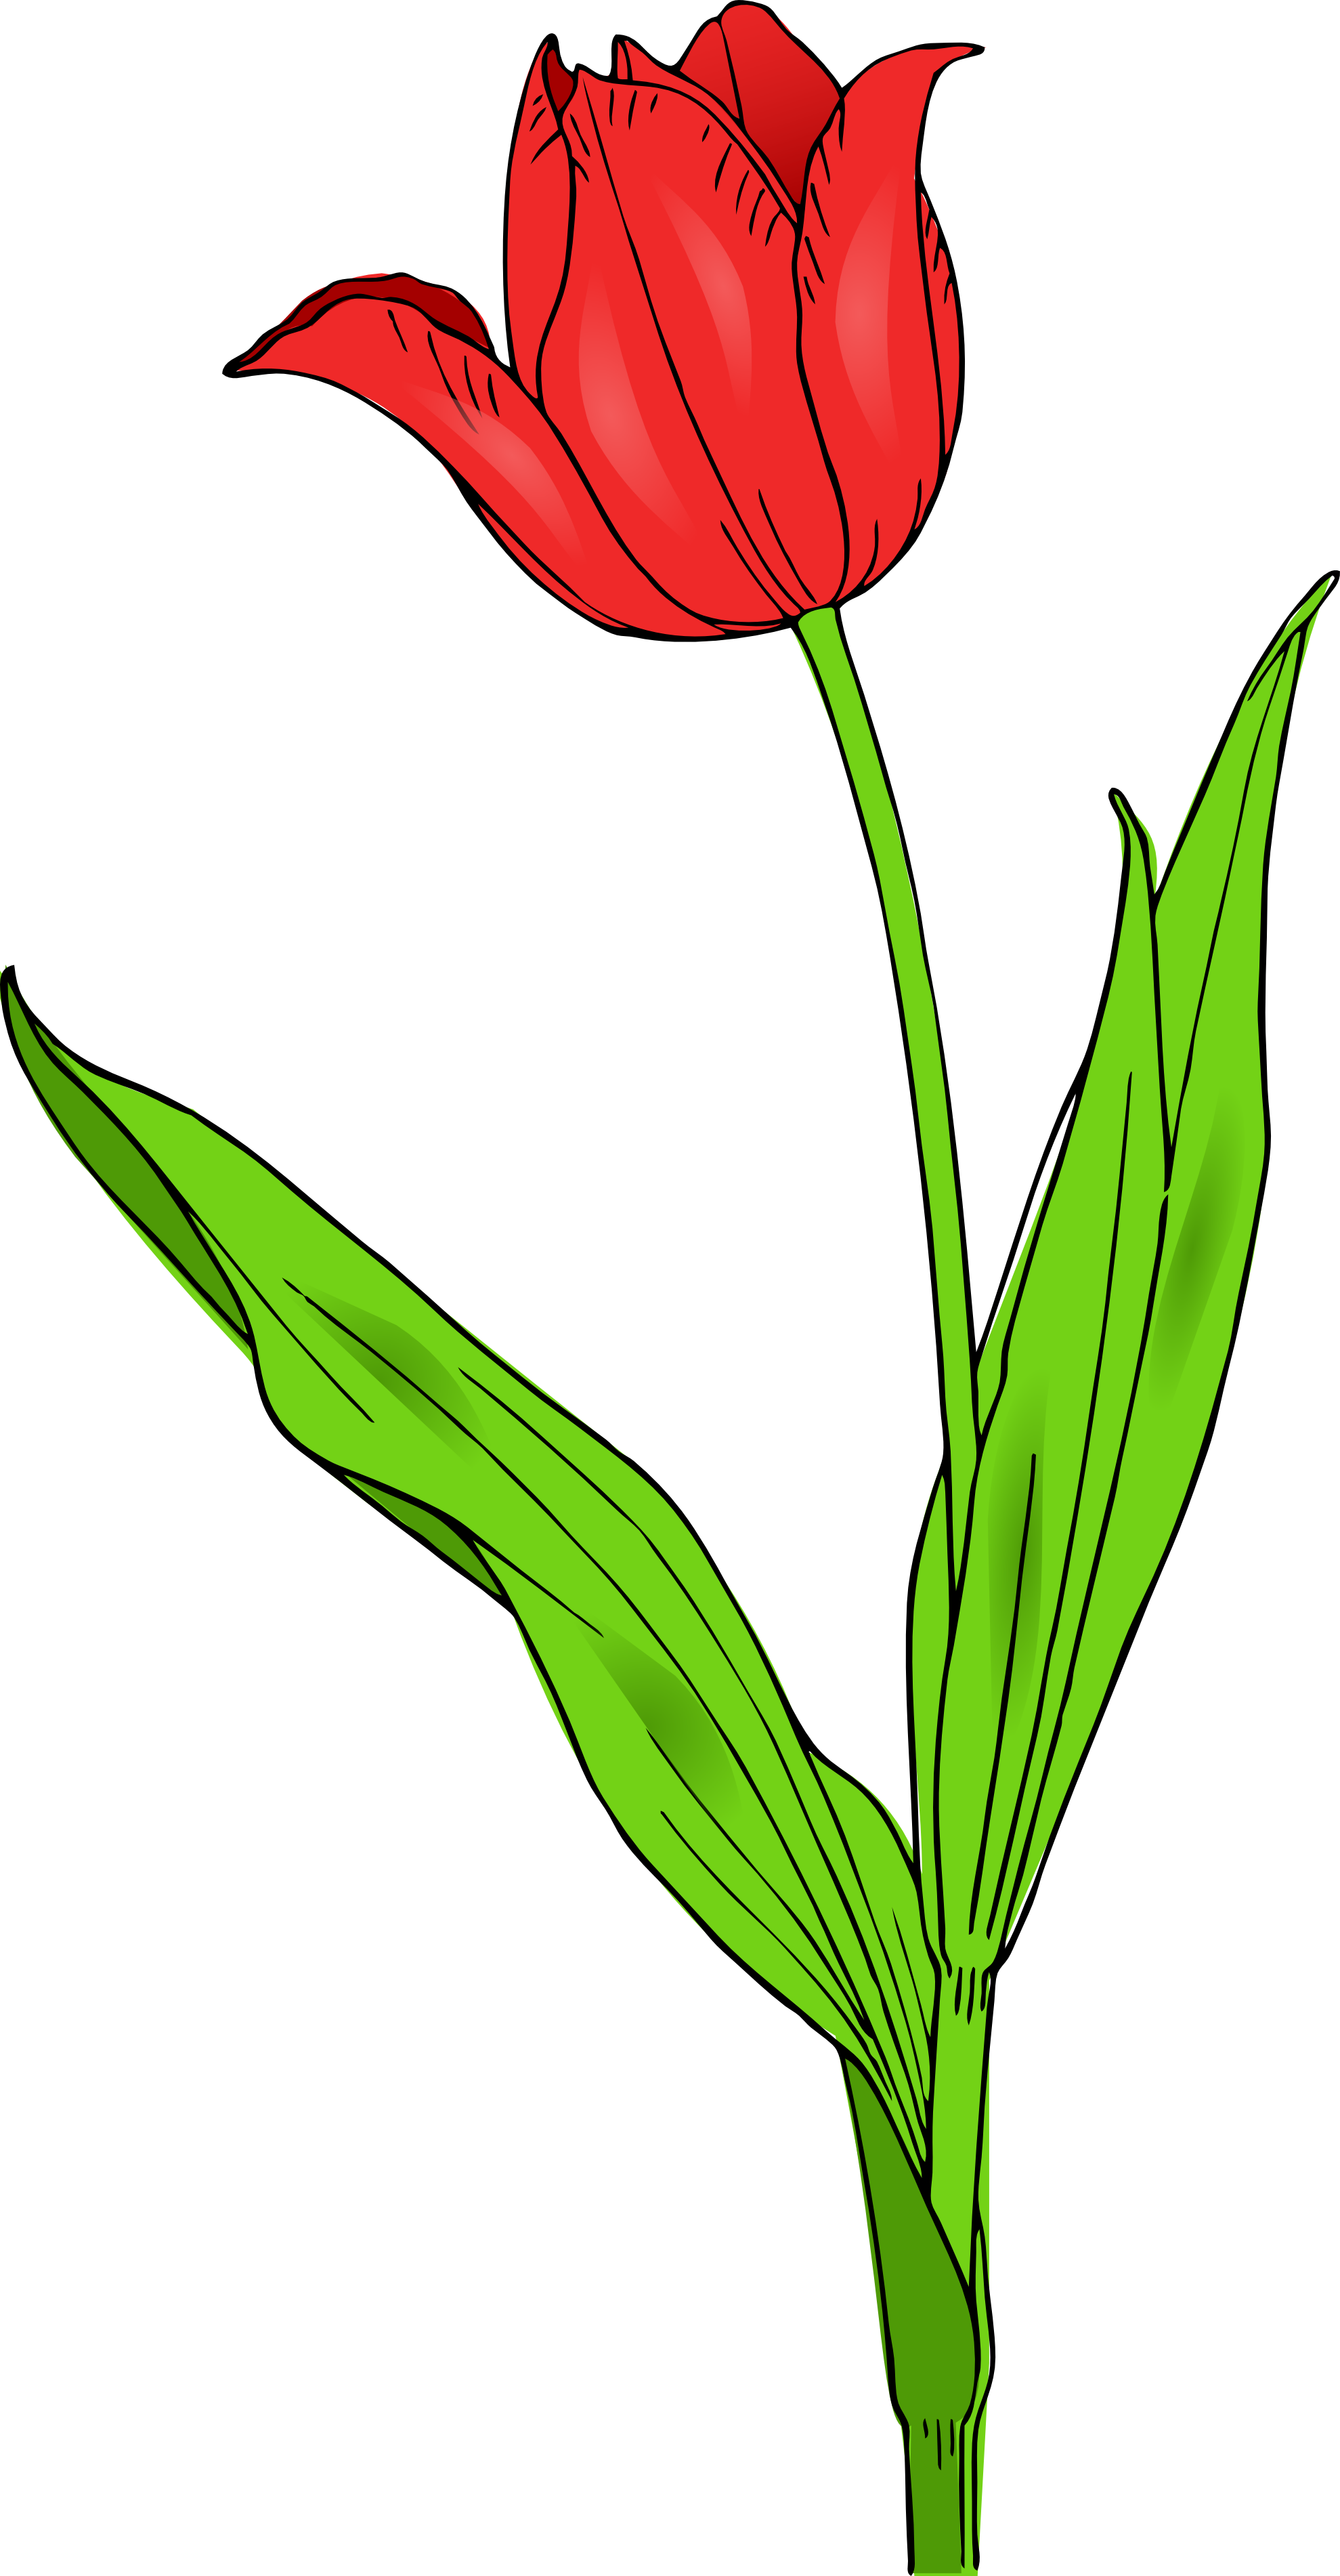 Drawing of tulips clipart image freeuse stock Free Tulip Images, Download Free Clip Art, Free Clip Art on Clipart ... image freeuse stock